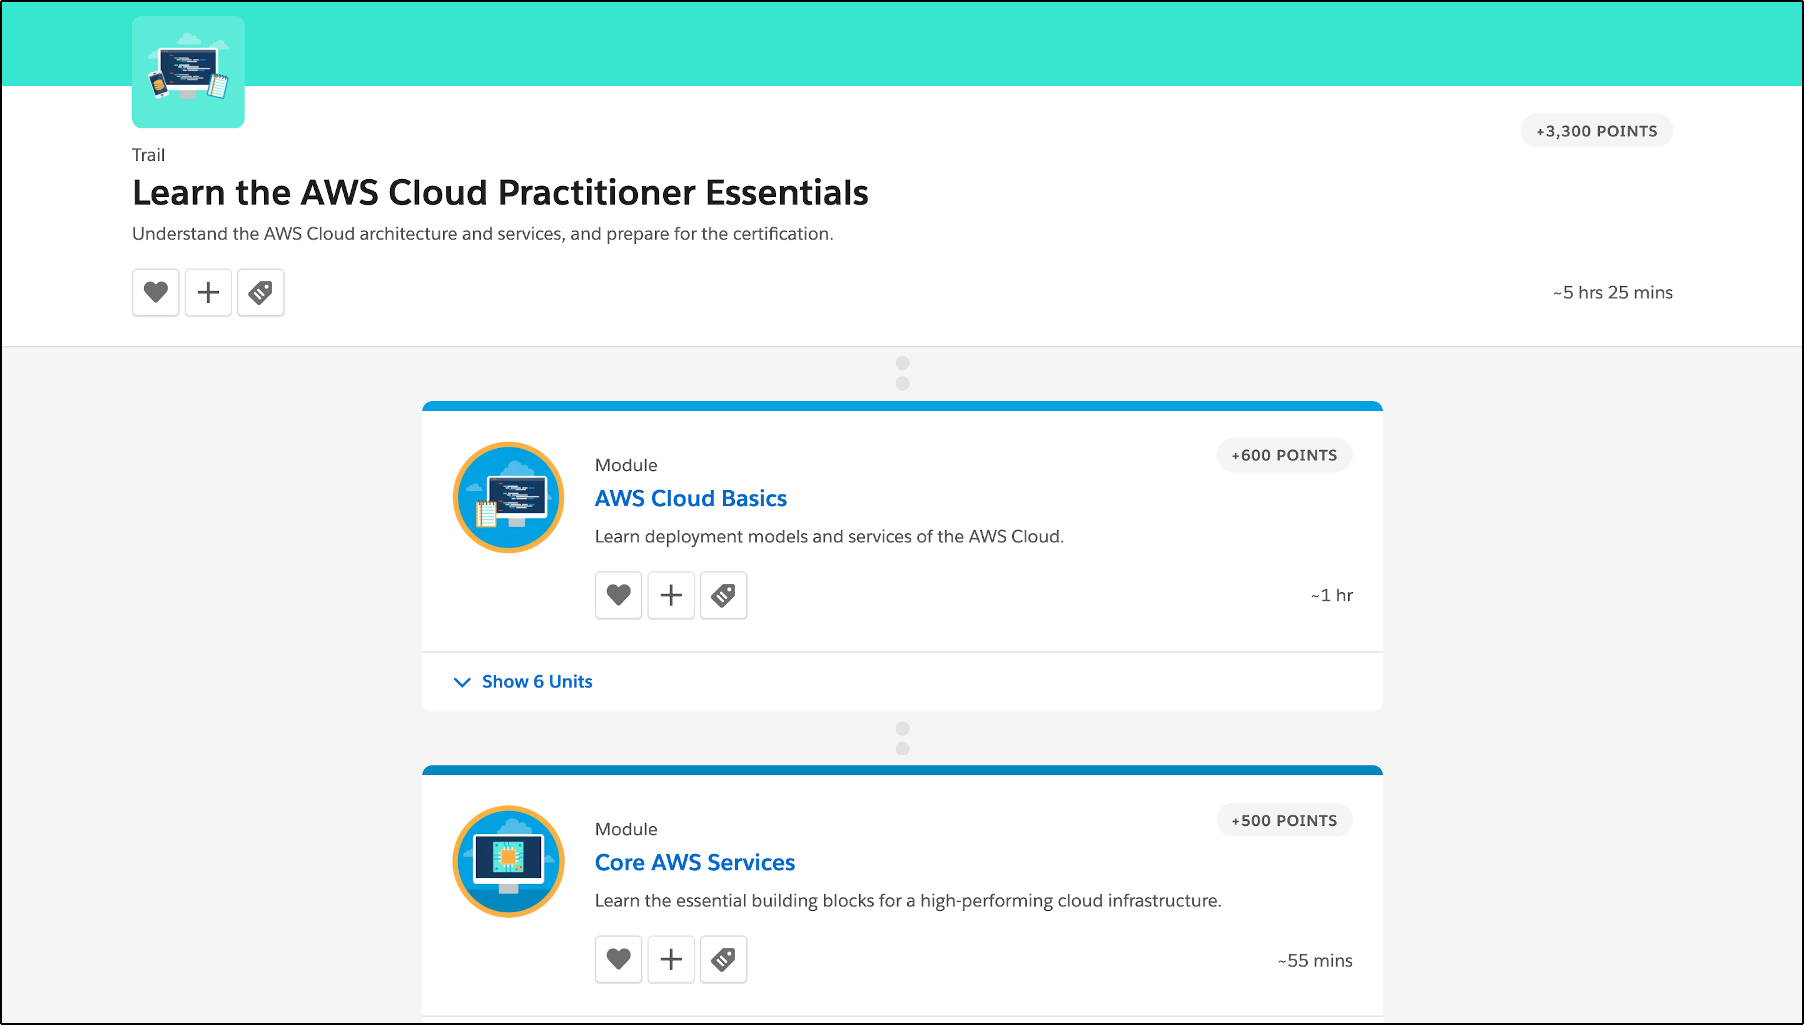 AWS Cloud Practitioner trail